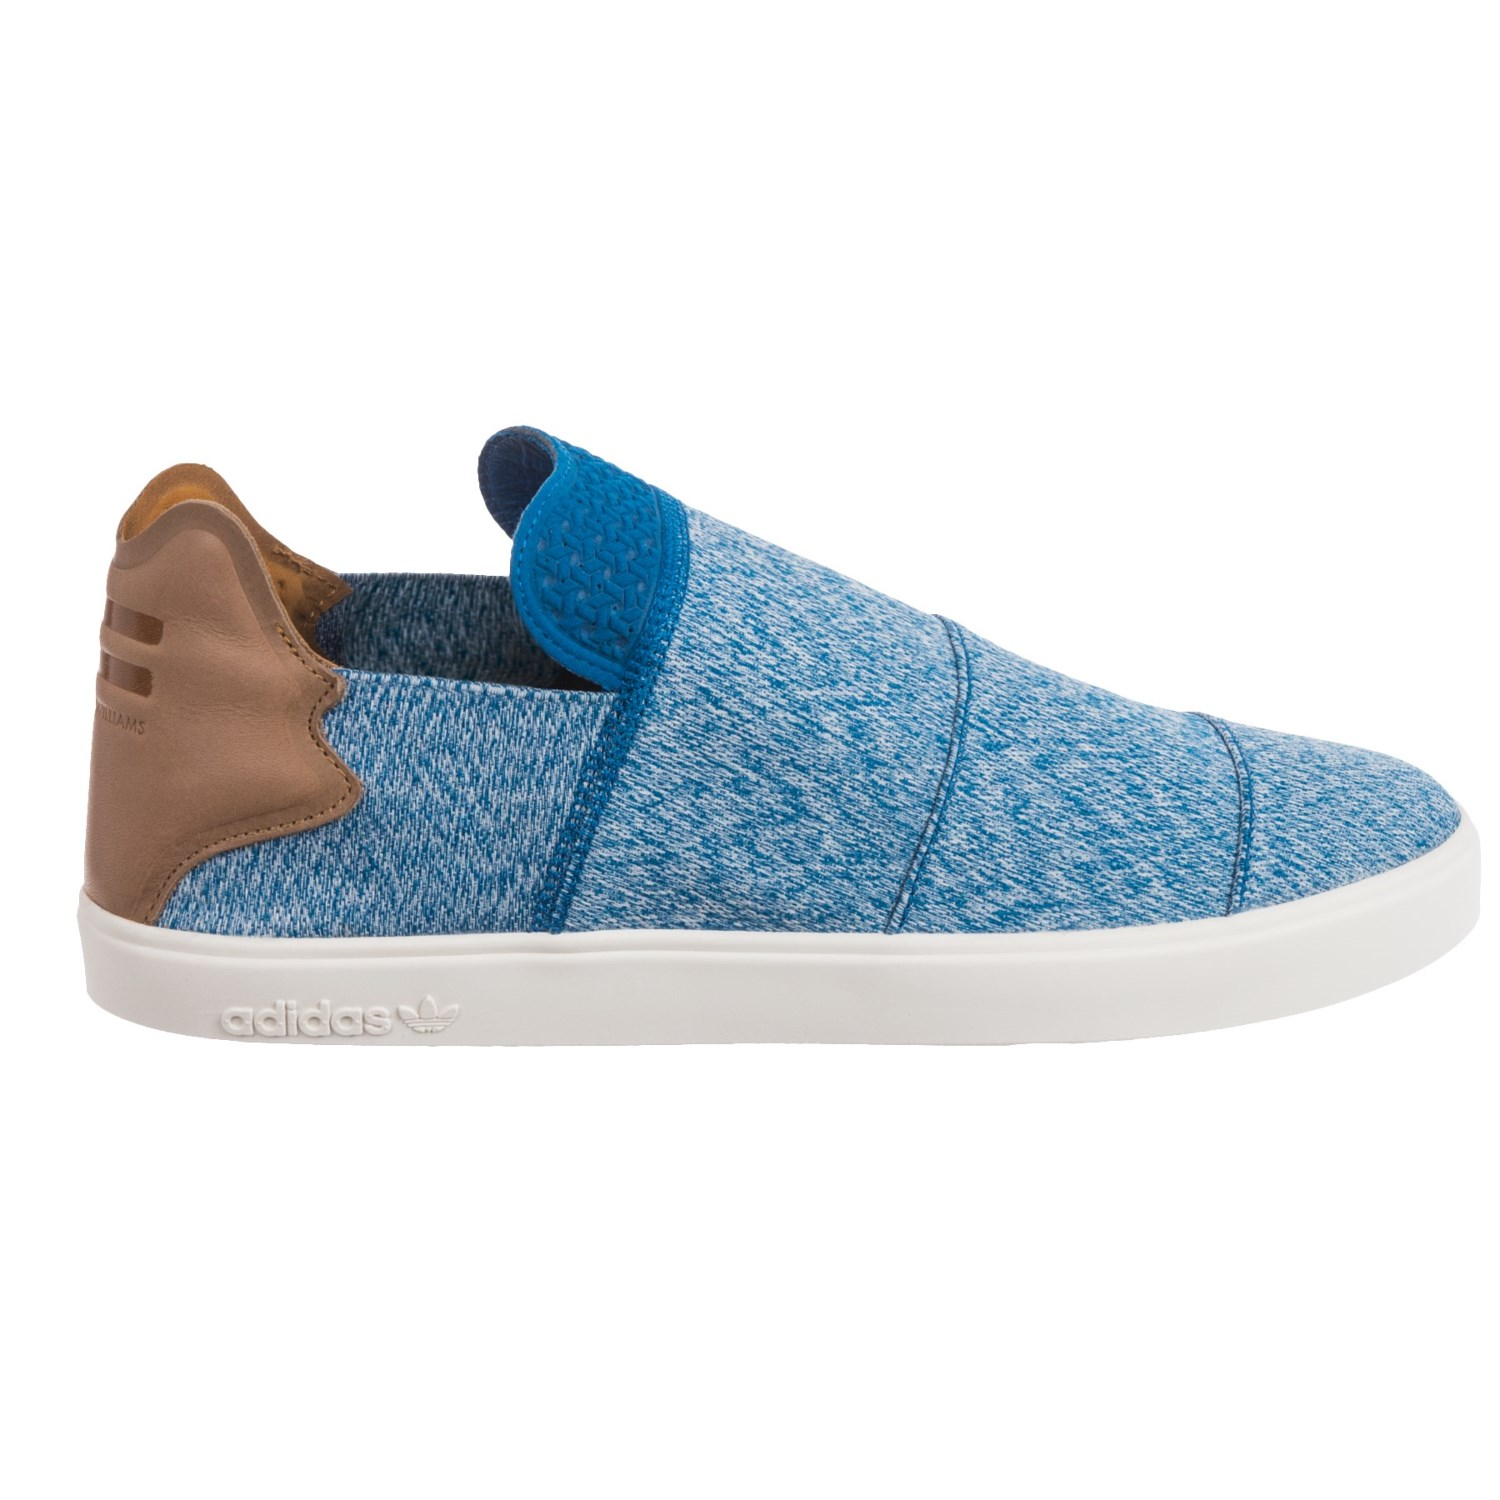 adidas Pharrell Williams Vulc Shoes (For Men) - Save 53%